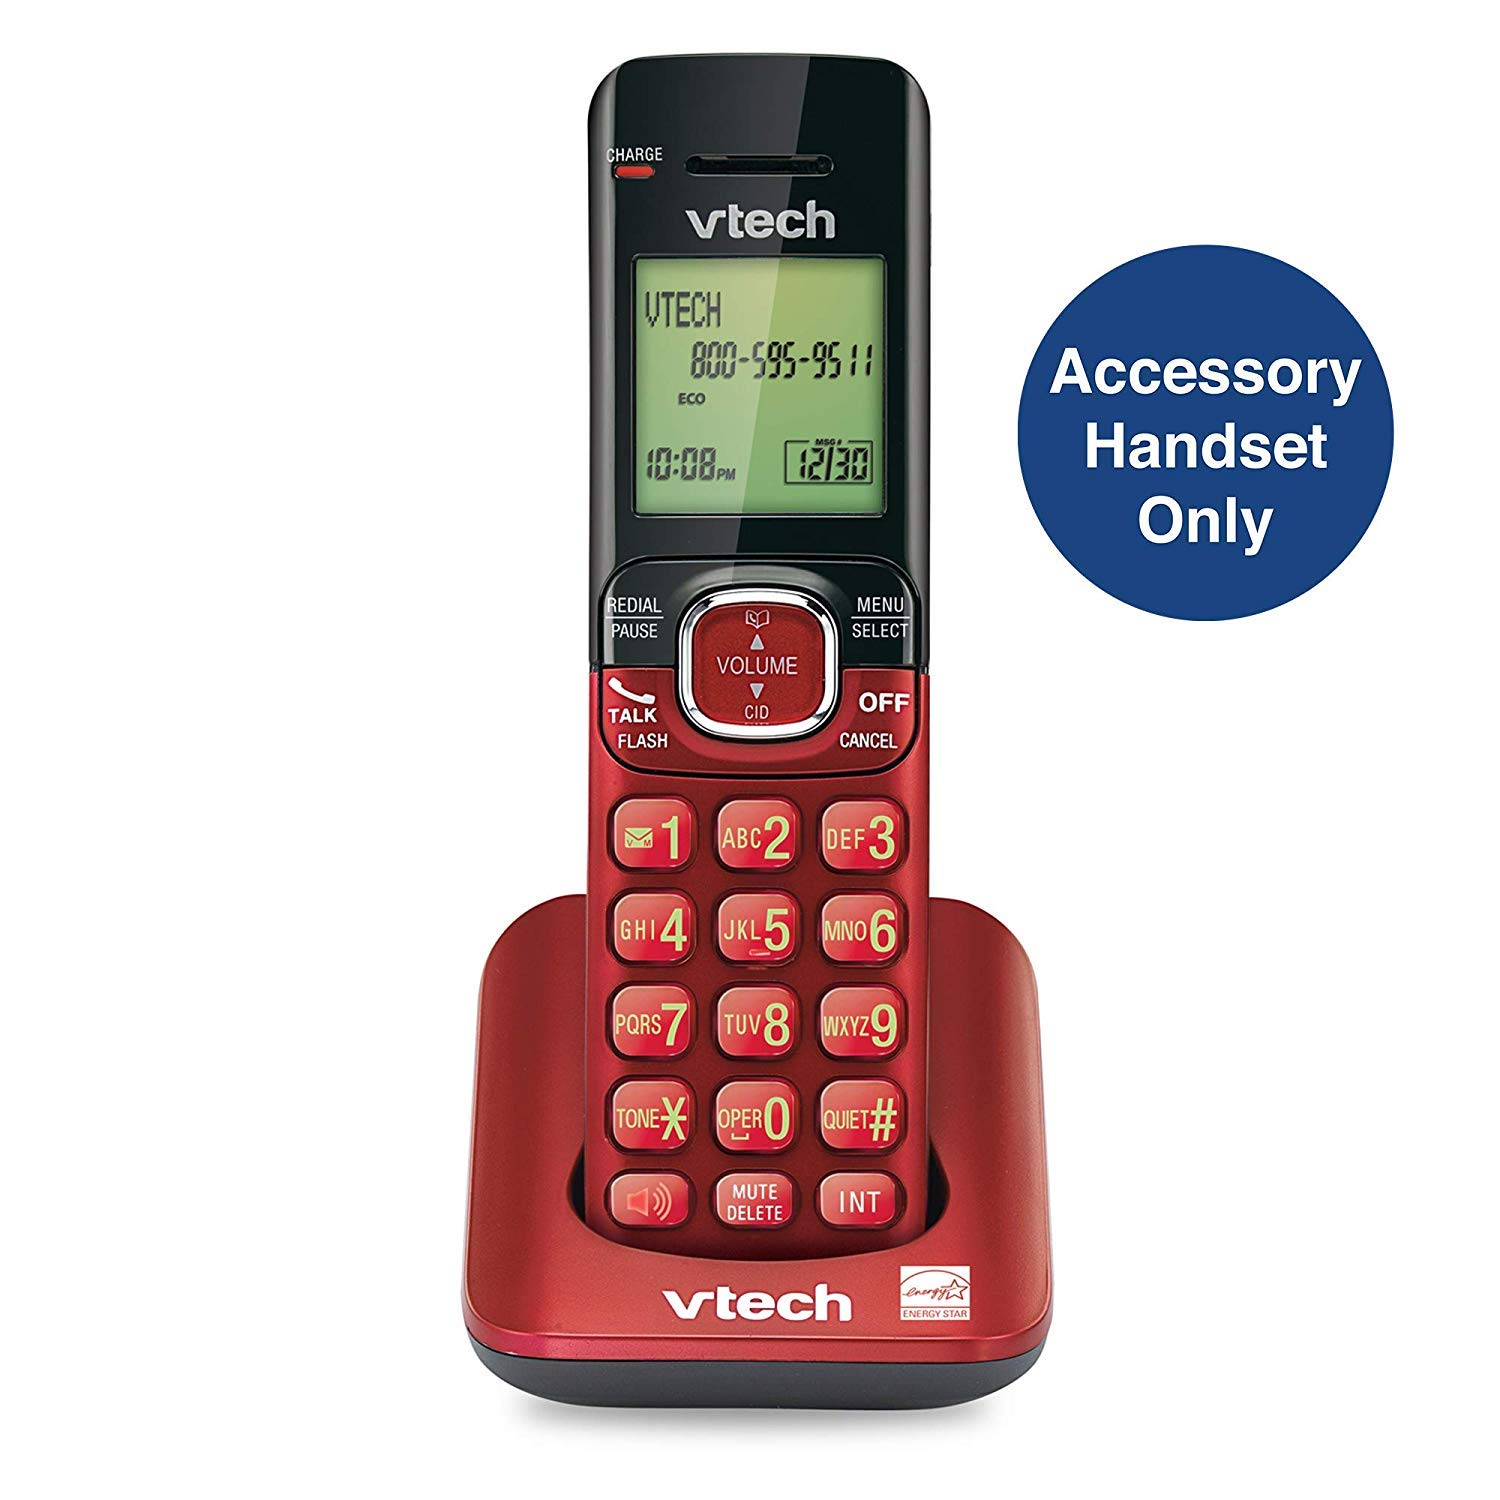 VTech CS6509-16 Accessory Cordless Handset, Red | Requires a VTech CS6519, CS6528, or CS6529 Series Cordless Phone System to Operate